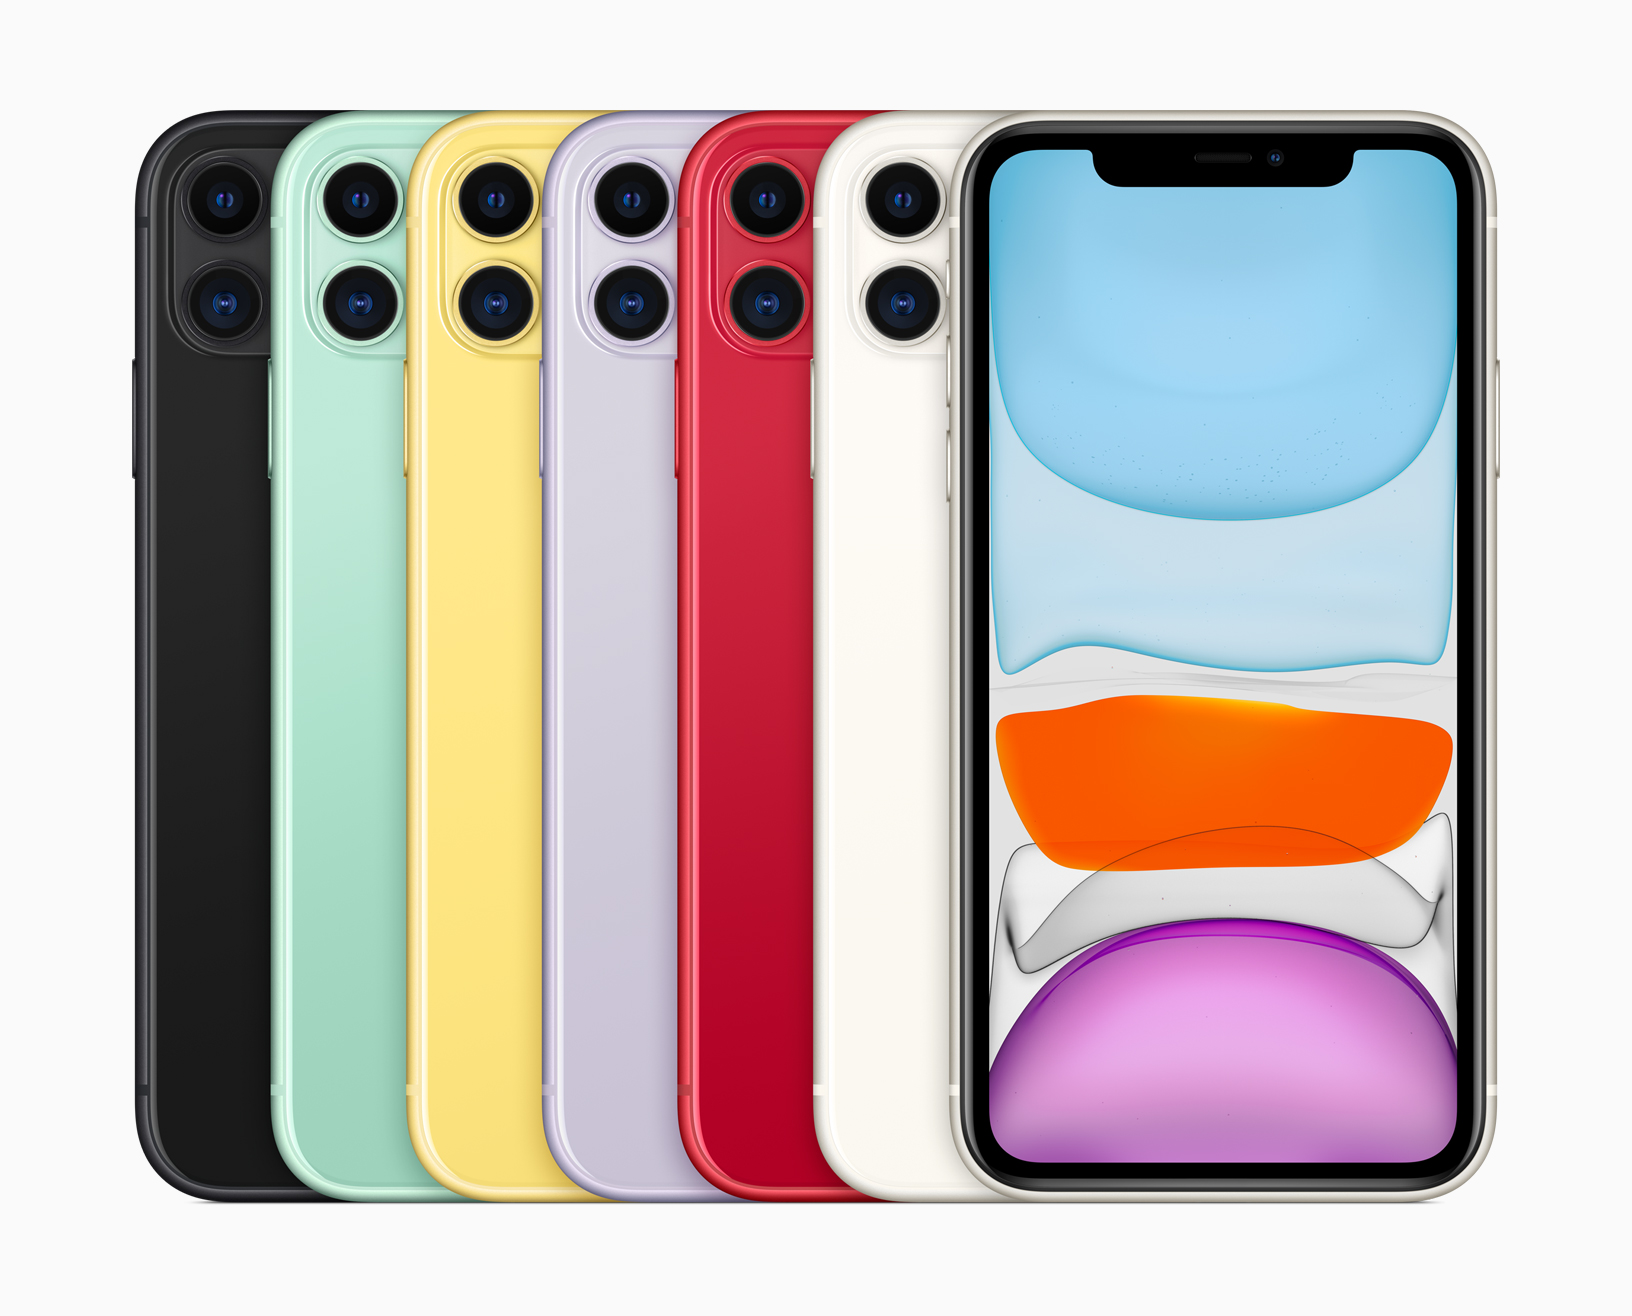 Apple announces 13th generation iPhone 11 equipped with A13 Bionic – the fastest chip in a smartphone - Alvinology